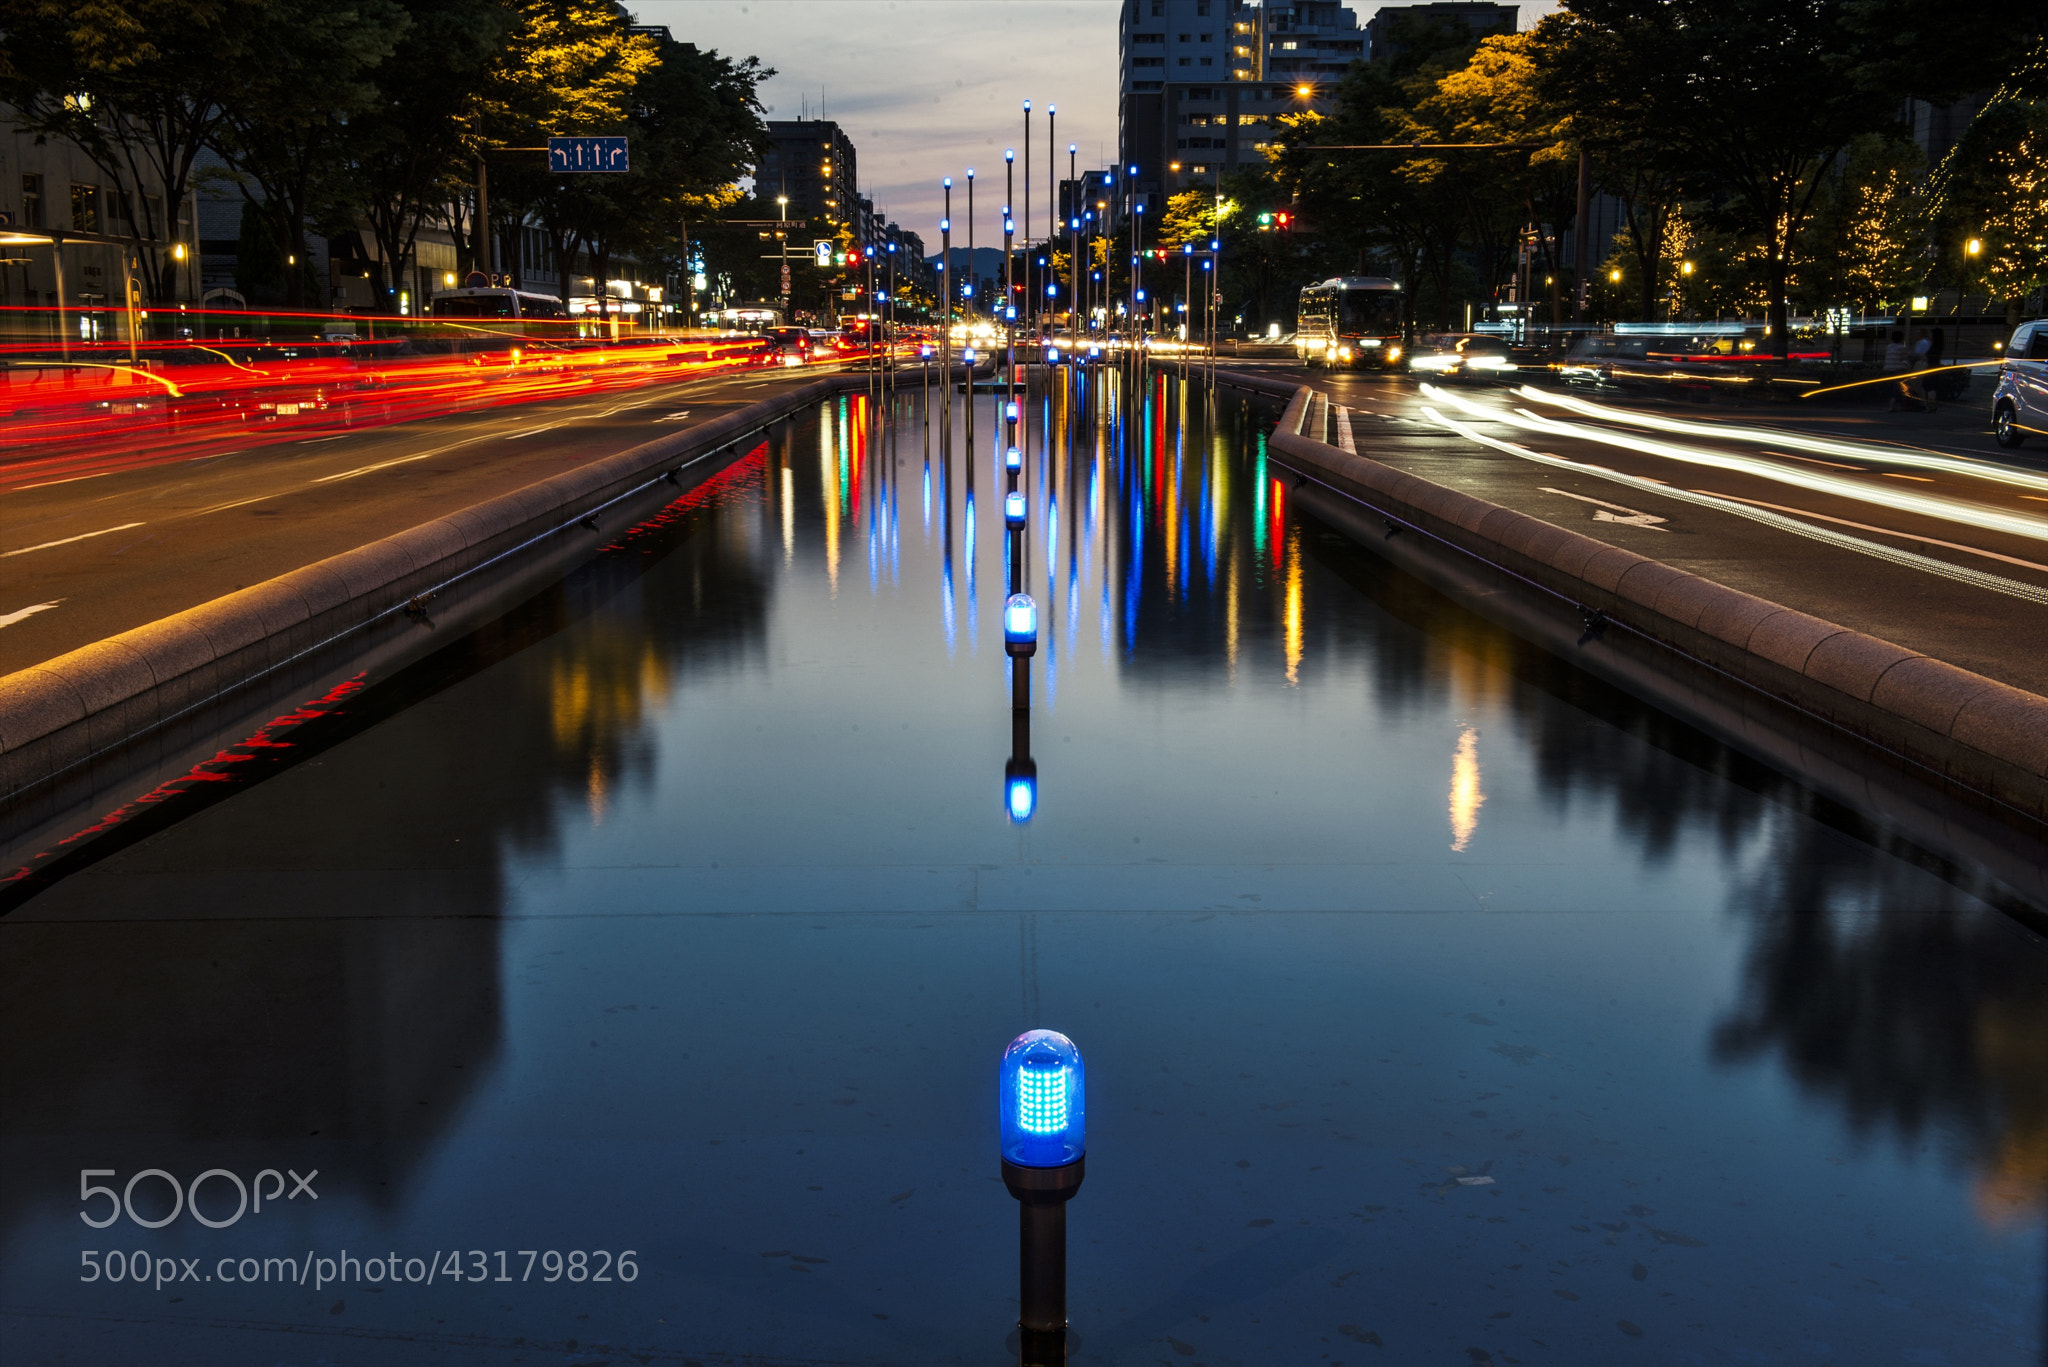 Photograph Reflection in the Lights by hugh dornan on 500px